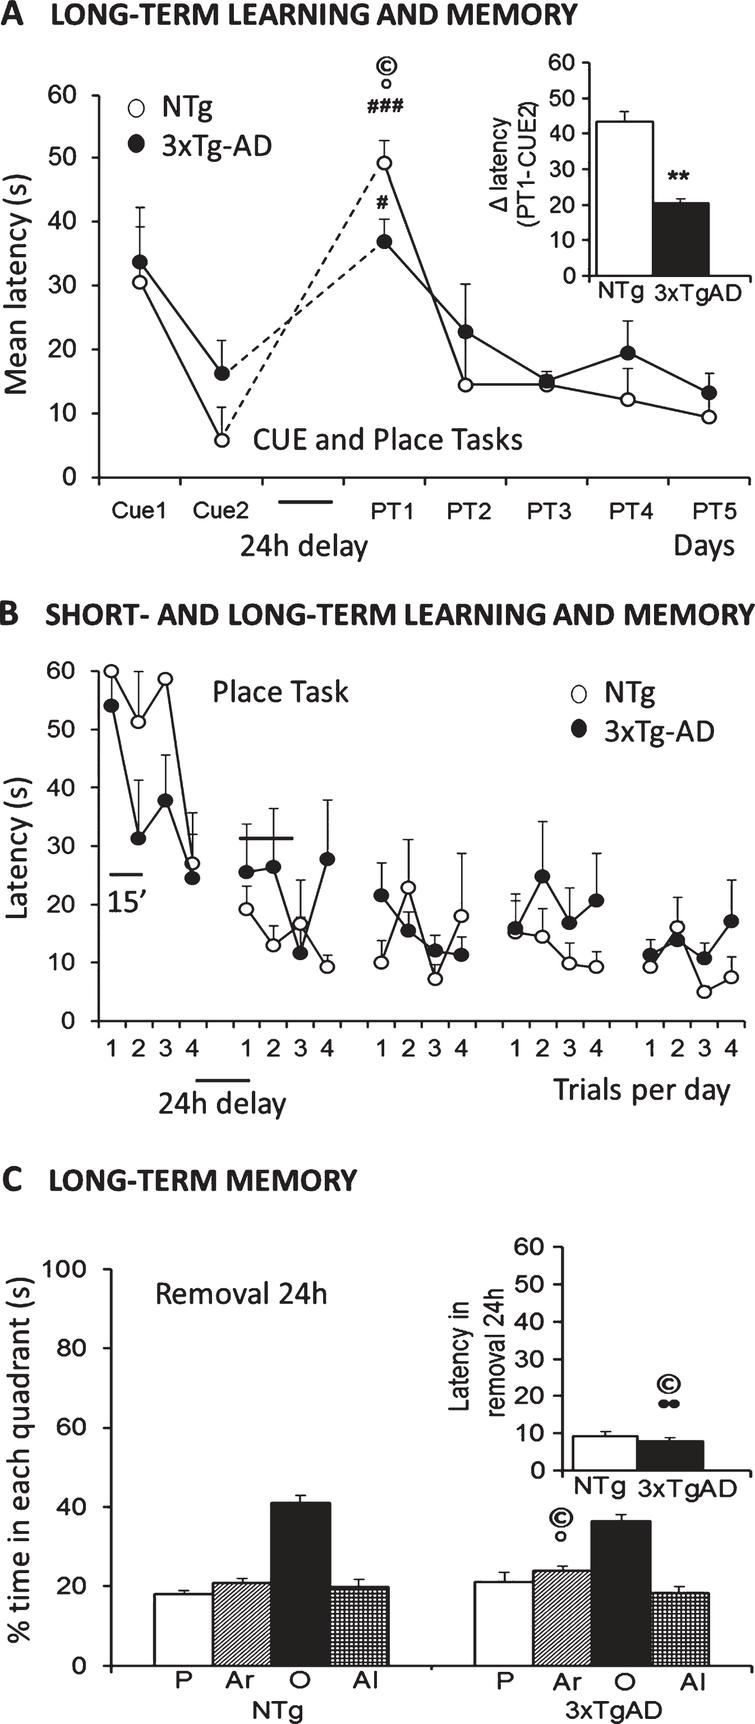 Salient learning and memory deficits in three paradigms of the Morris water maze in 18-month-old female 3xTg-AD mice surviving to advanced stages of disease as compared to age-matched NTg counterparts. A) The cue and place tasks showed similar acquisition curves over days, but genotype differences could be found when the platform was hidden and located in a reversed position. The new task was more difficult for animals remembering the prior location, so it took them more time to find the new position. B) Detailed analysis of short- and long-term memory assessed in the place tasks evidenced that cognitive impairment was the salient trait for distinguishing the genotypes. C) Memory, assessed in the Removal, showed lack of preference for the trained quadrant in both groups pf mice, with a slightly worse performance in the 3xTg-AD mice. Student's t-test, *p < 0.05, **p < 0.01 versus NTg mice. Paired t-test # p < 0.05, # # # p < 0.001 PT1 versus Cue2. (©) Pearson's correlations between behavioral variables and lifespan: •positive, °negative, p < 0.01.